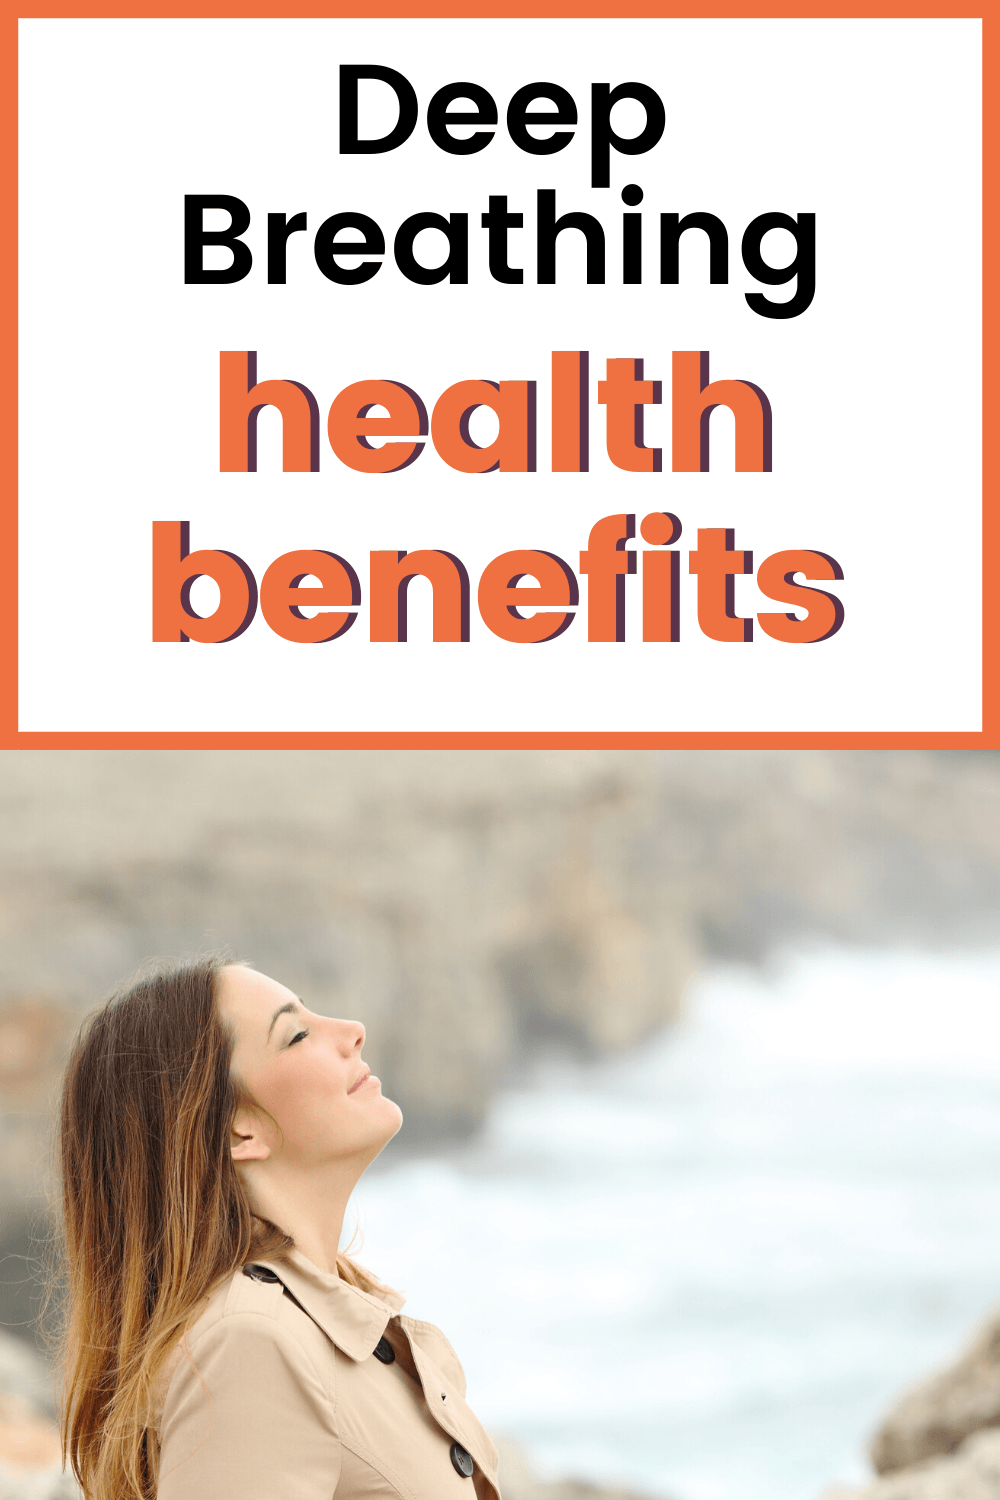 deep breathing health benefits